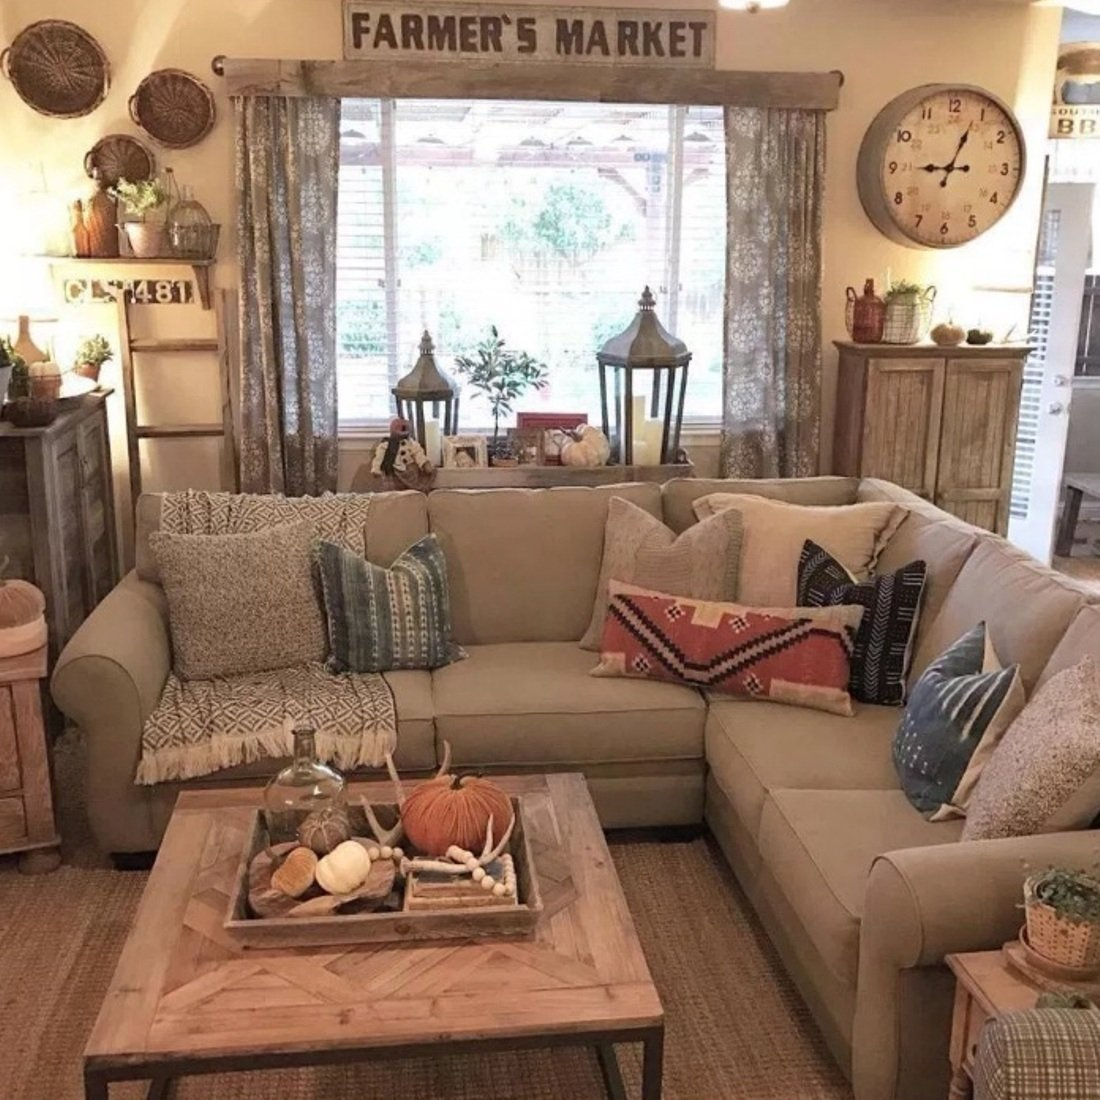 10 Lovable Rustic Decorating Ideas For Living Rooms 4 simple rustic farmhouse living room decor ideas my home decor guide 2021